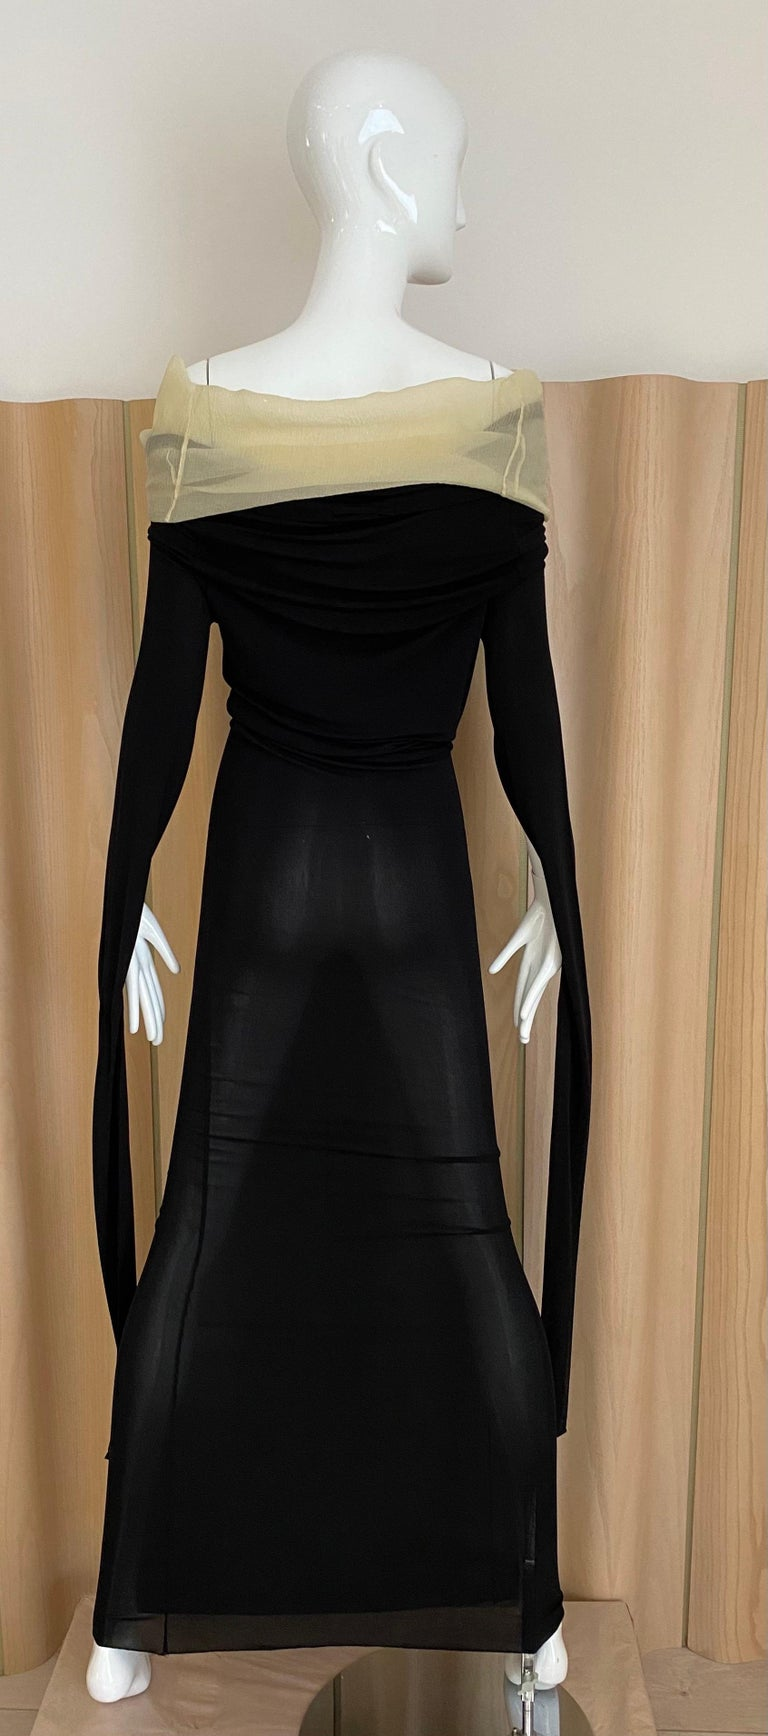 1990s Jean Paul Gaultier Black Knit Dress with Cut Out Sleeves 3